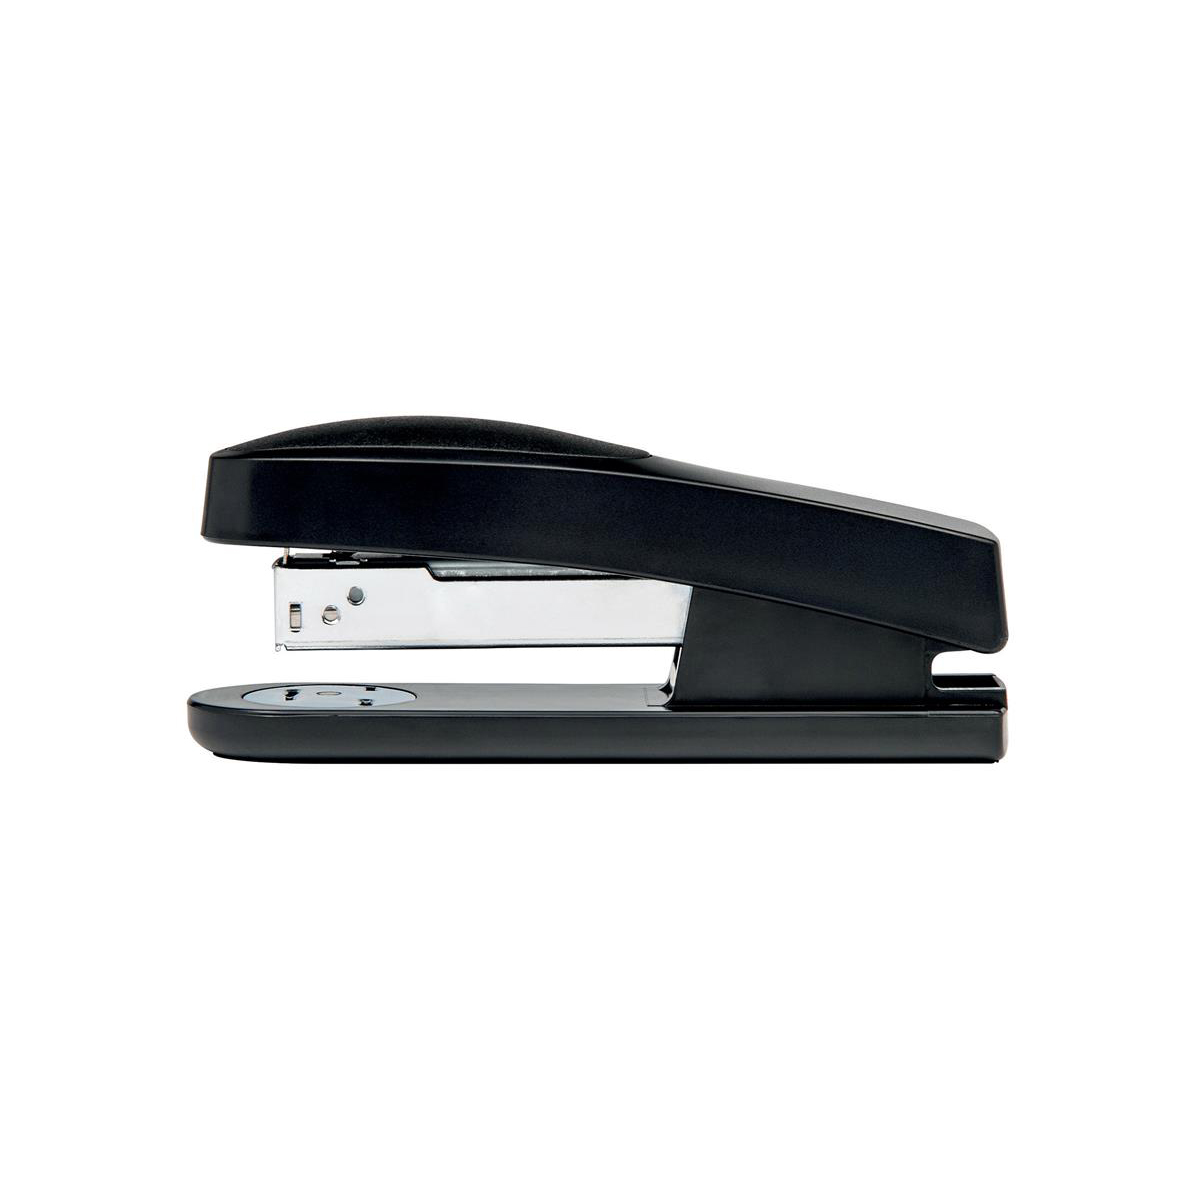 Long Arm Staplers 5 Star Office Half Strip Stapler Top Loading Rubber Base 25 Sheet Capacity Takes 26/6 Staples Black